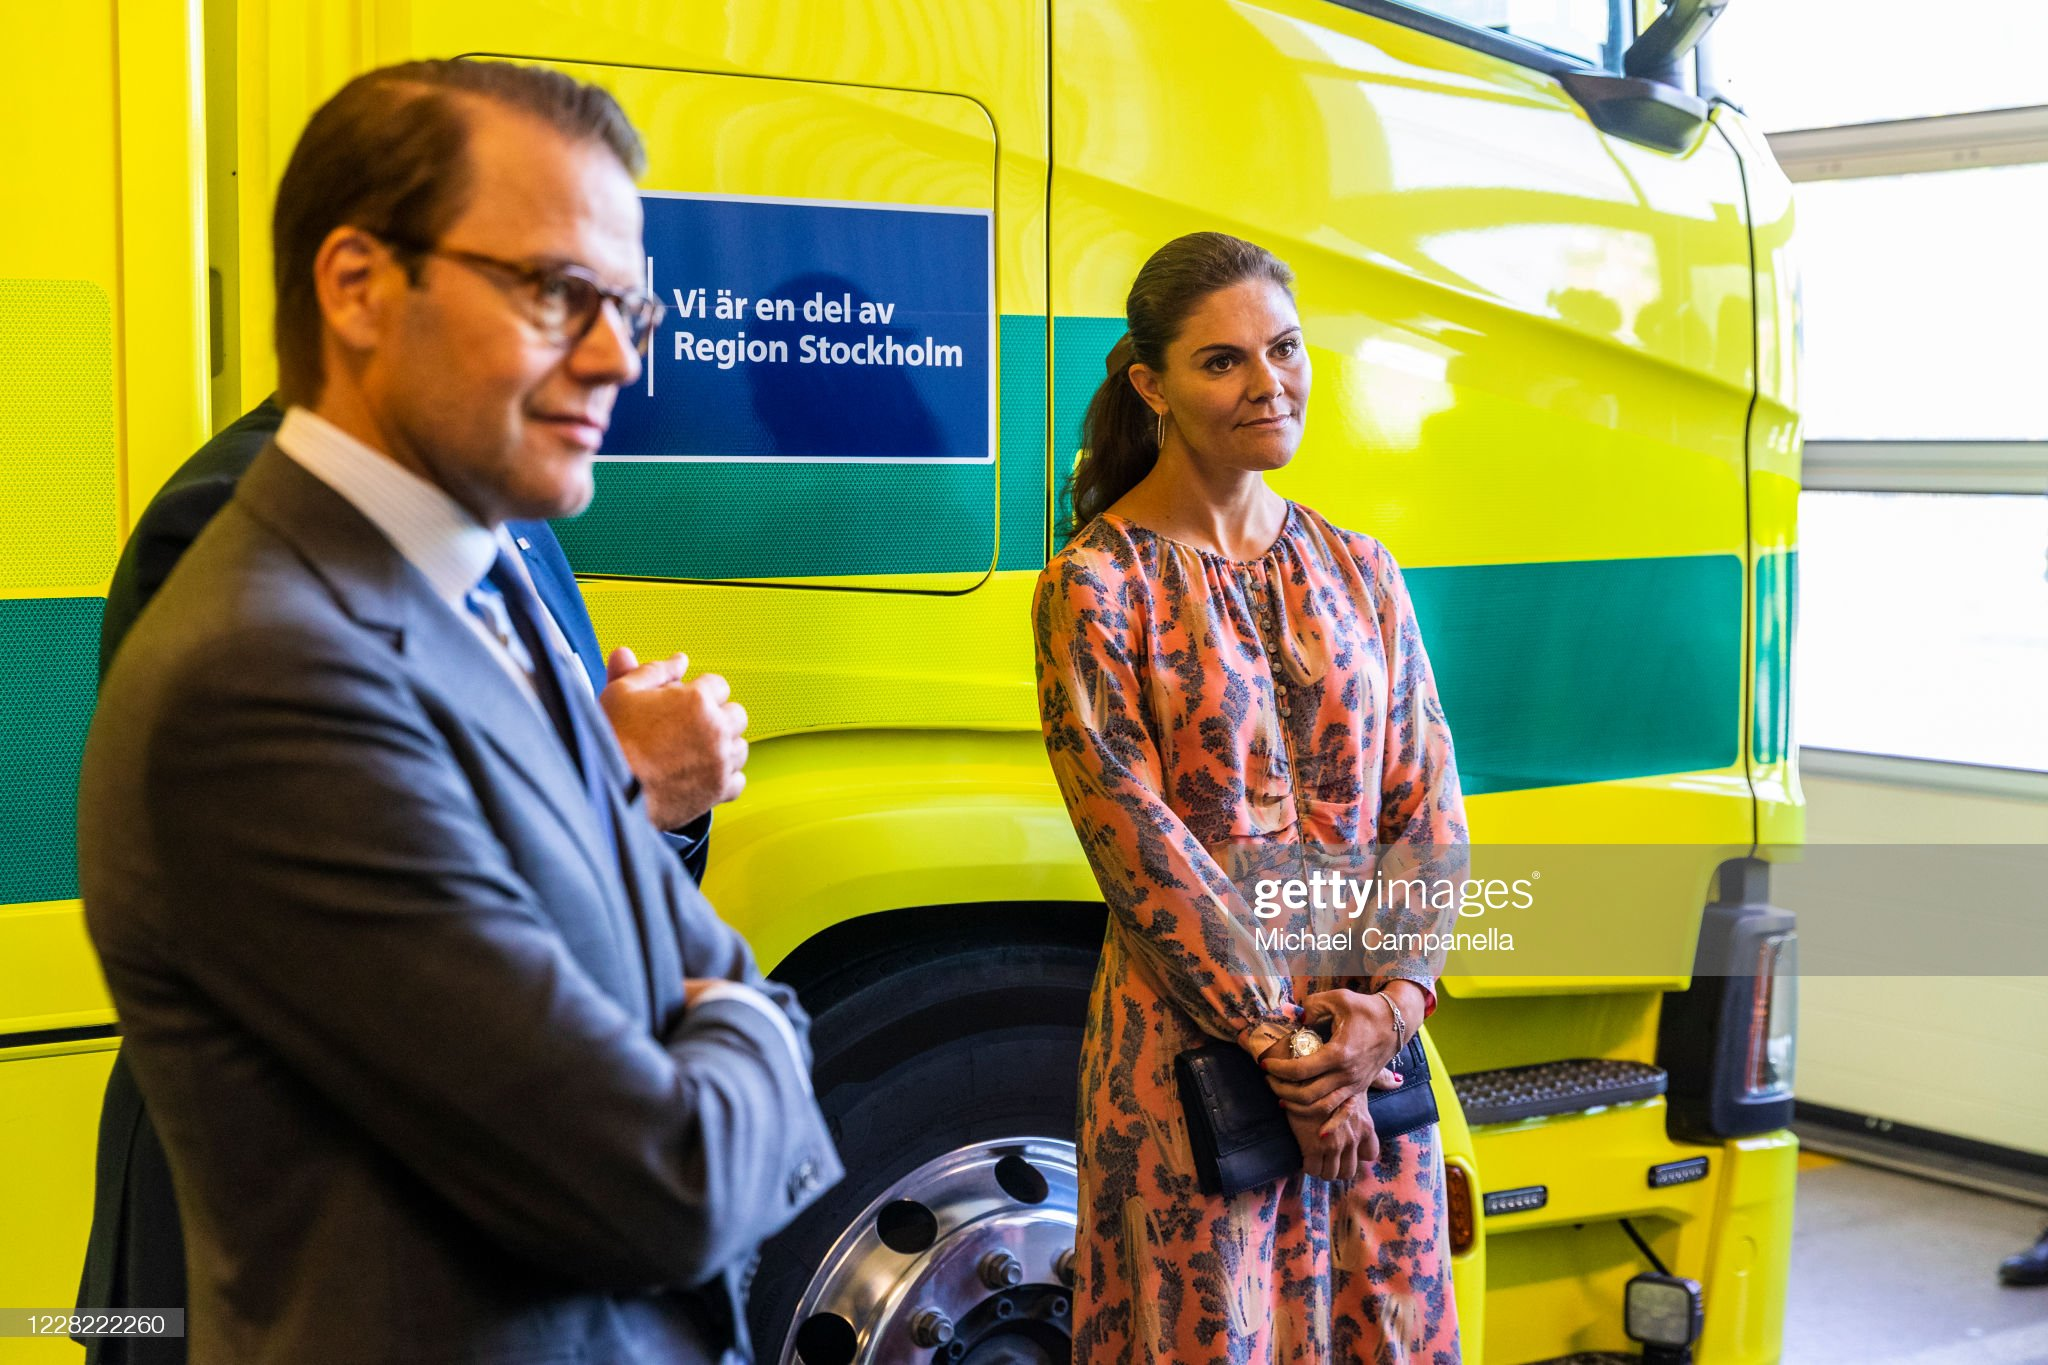 crown-princess-victoria-and-prince-daniel-of-sweden-visit-an-station-picture-id1228222260